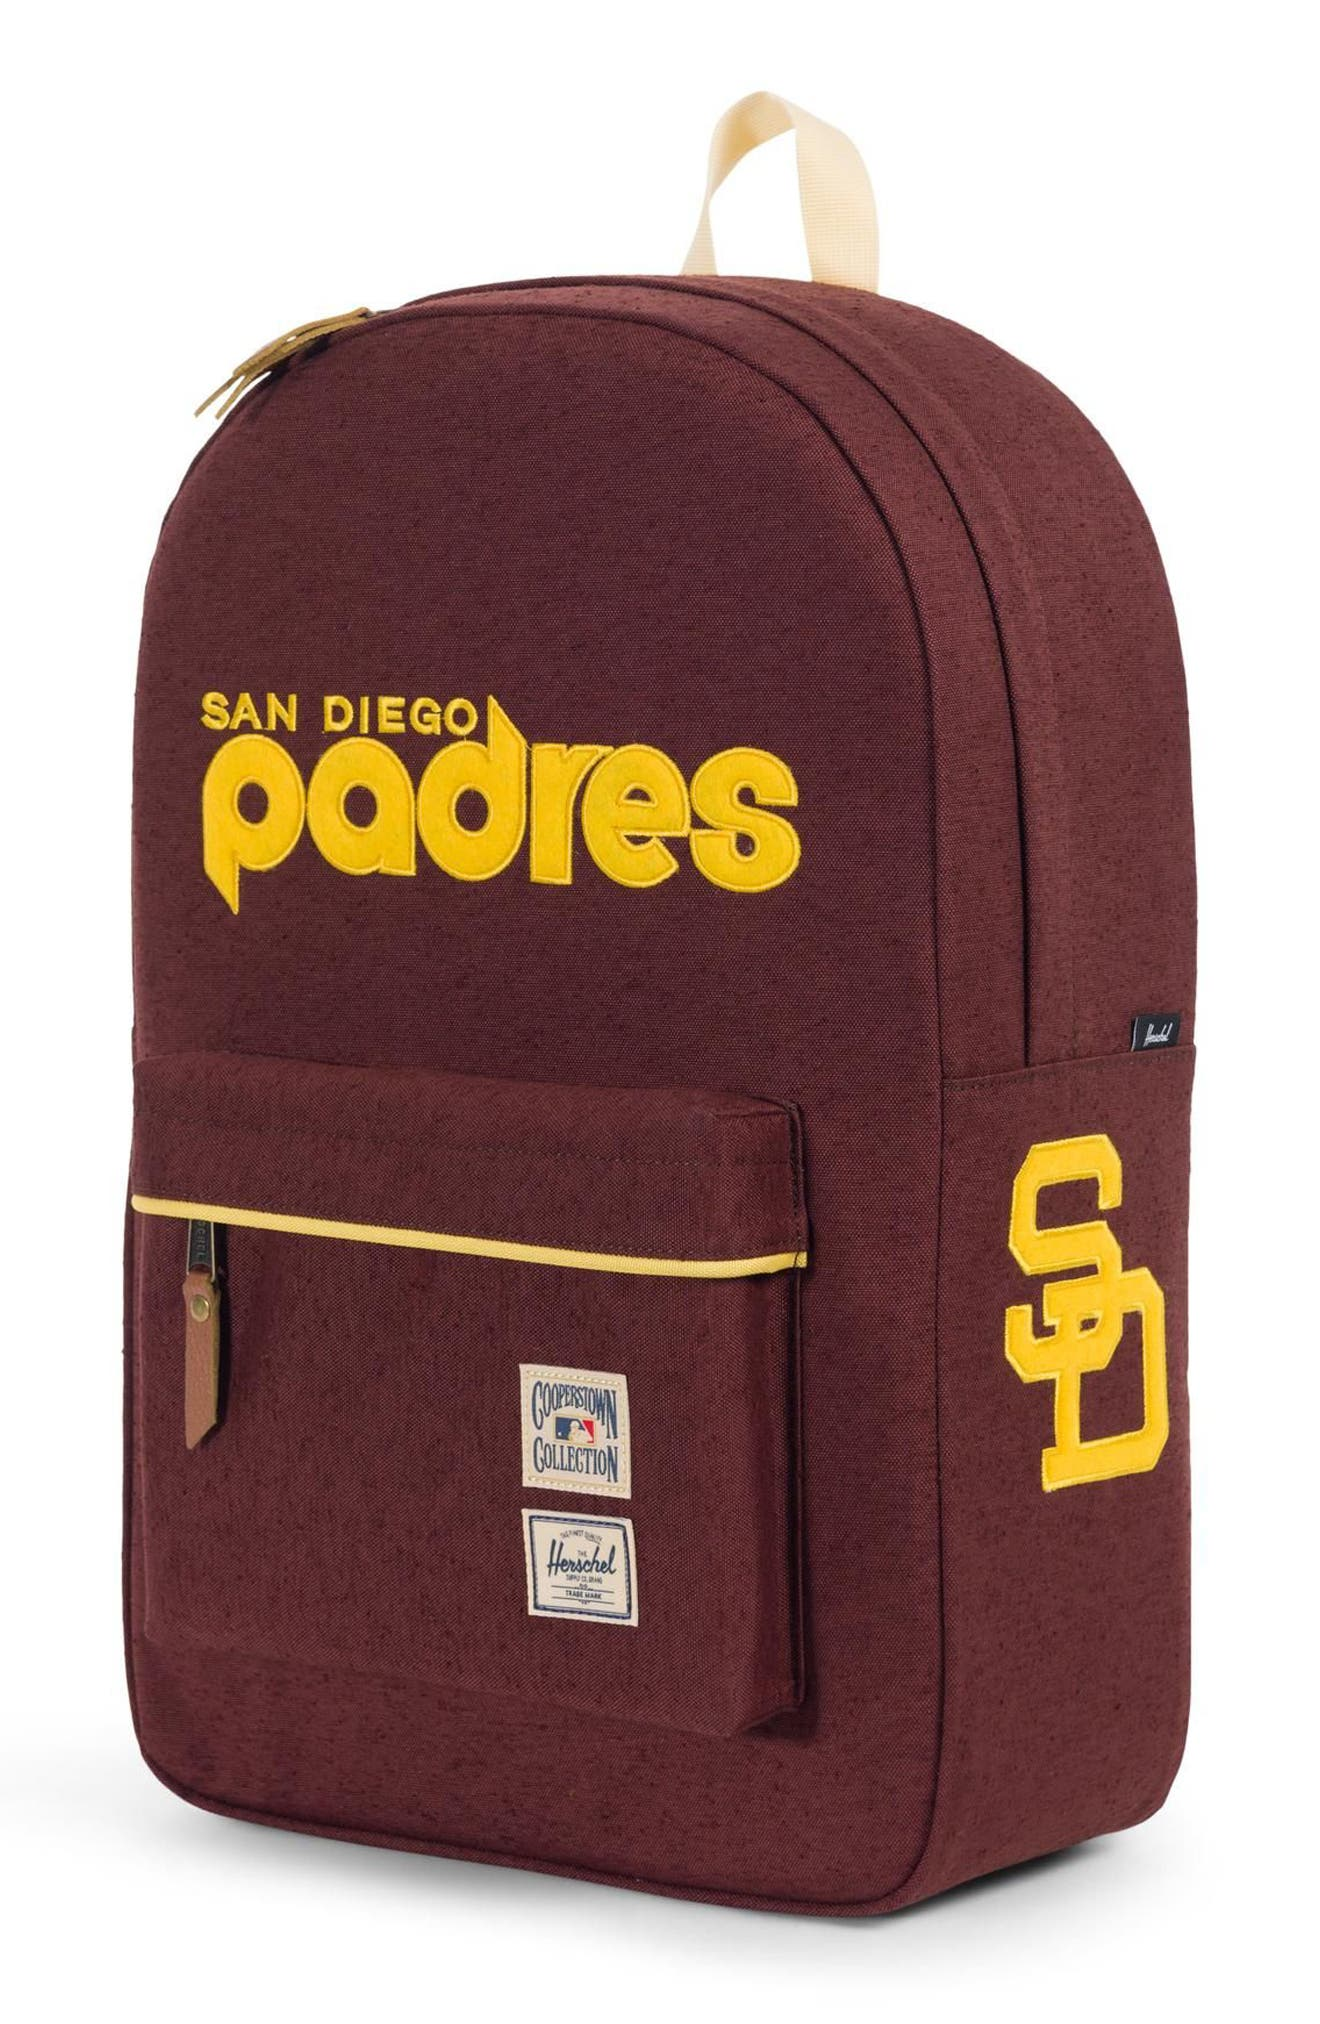 HERSCHEL SUPPLY CO.,                             Heritage - MLB Cooperstown Collection Backpack,                             Alternate thumbnail 4, color,                             SAN DIEGO PADRES